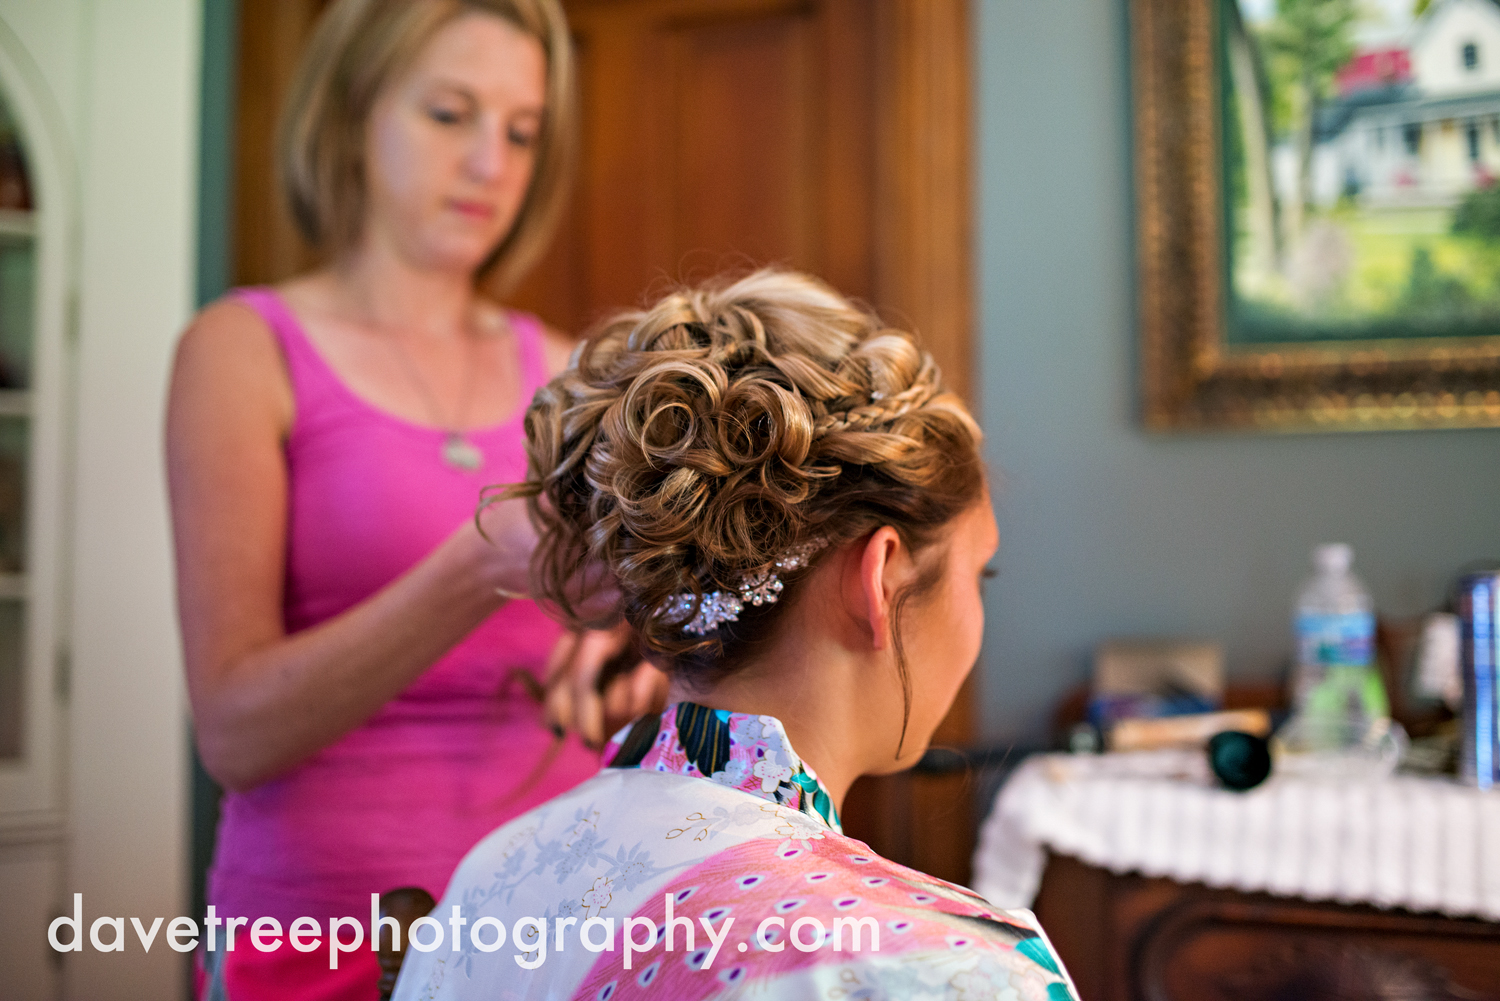 veranda_wedding_photographer_st_joseph_wedding_091.jpg